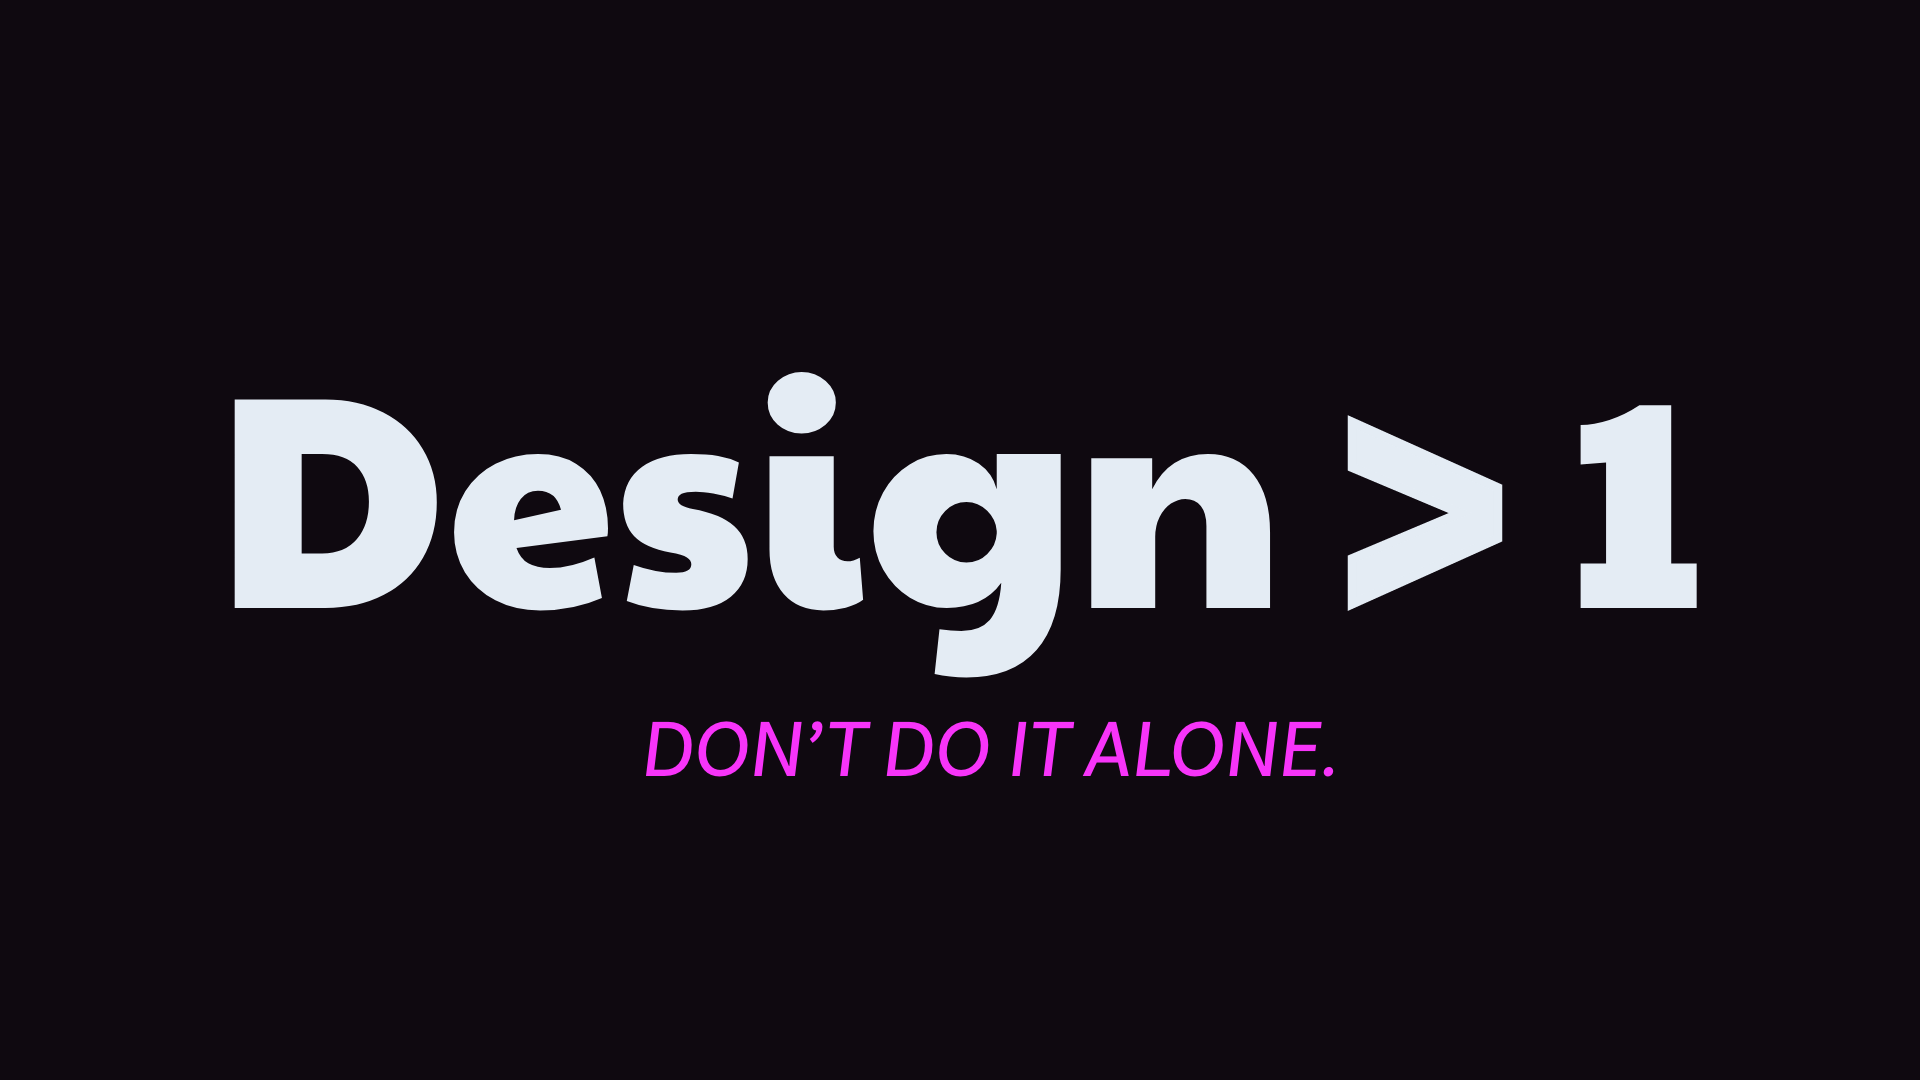 design is greater than one, don't do it alone banner